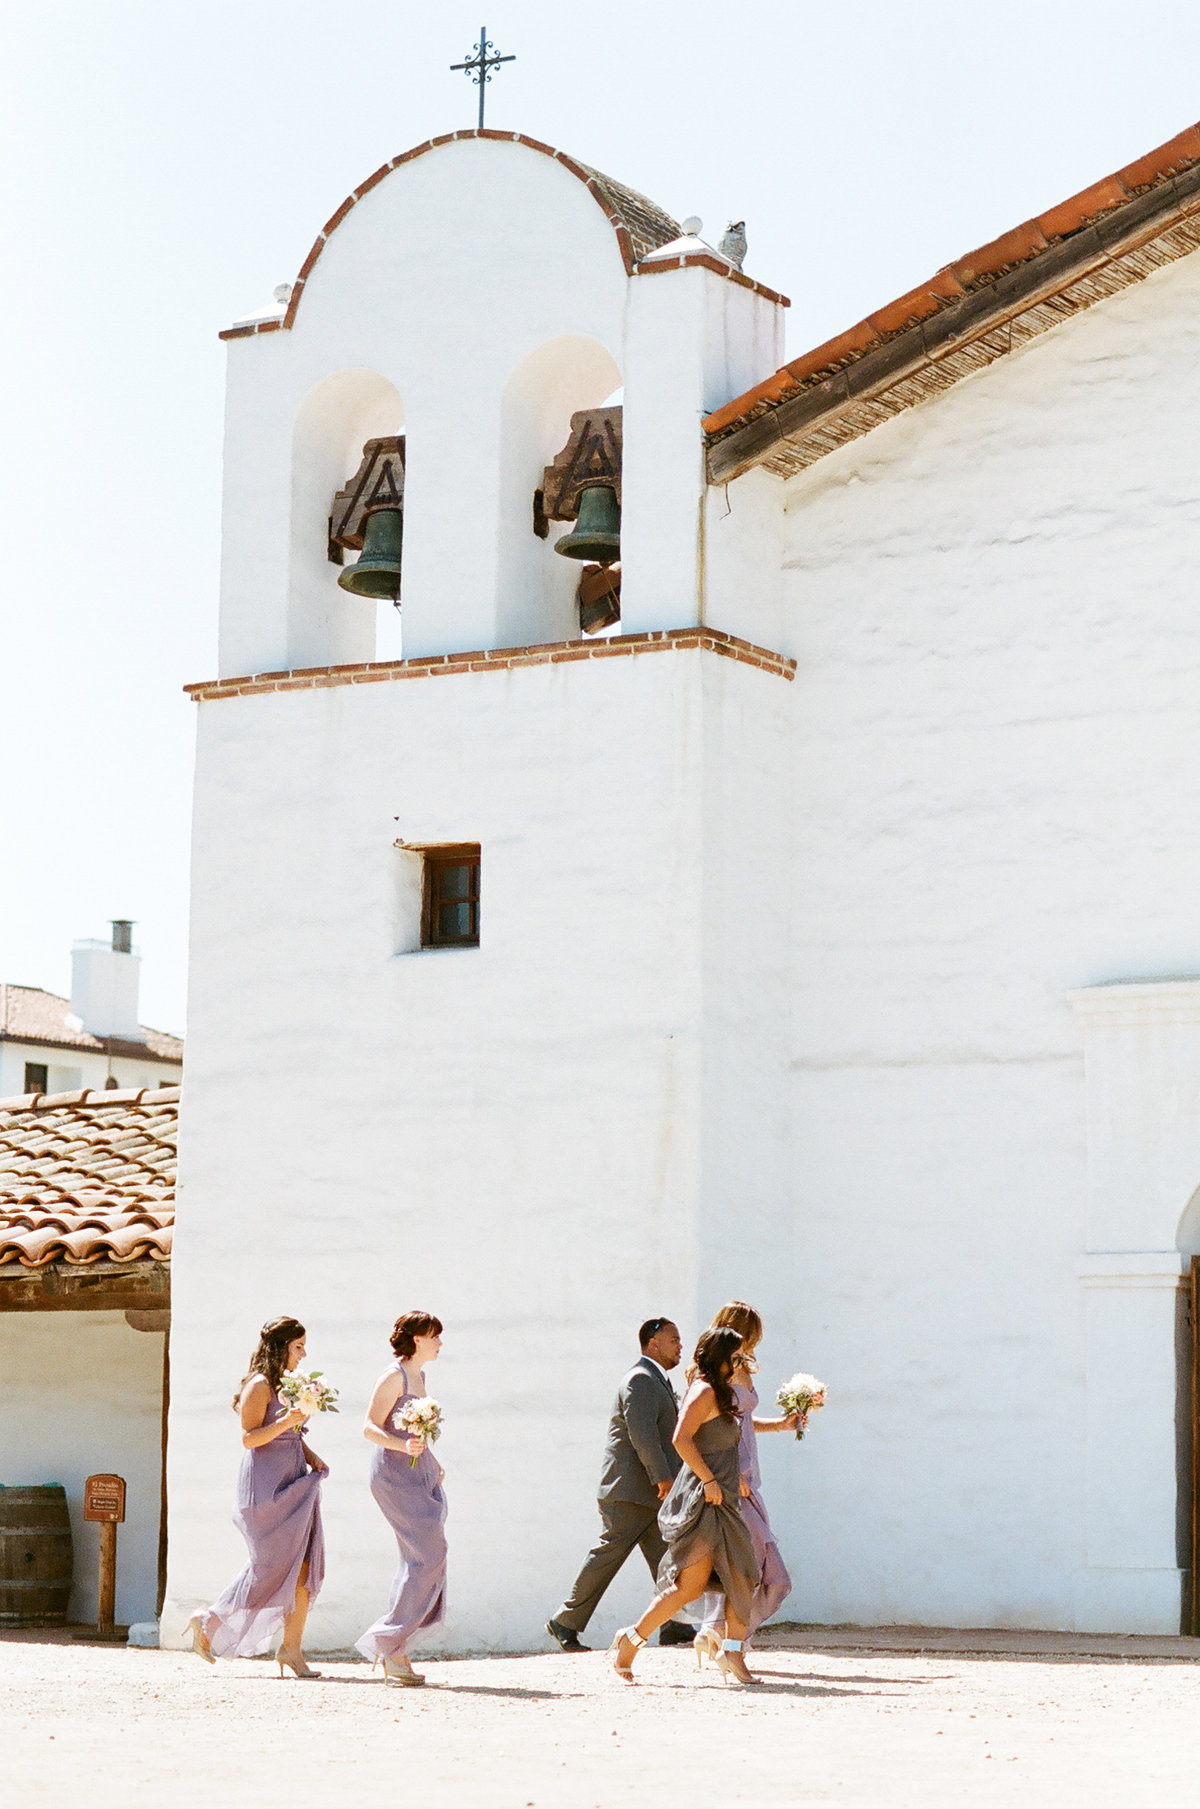 alex_toast_event_christianne_taylor_photos_photography_film_alex_solomon_alexandra_michael_toast_santa_barbara_el_presidio_mission_rustic_elegant_wedding_marry_-636